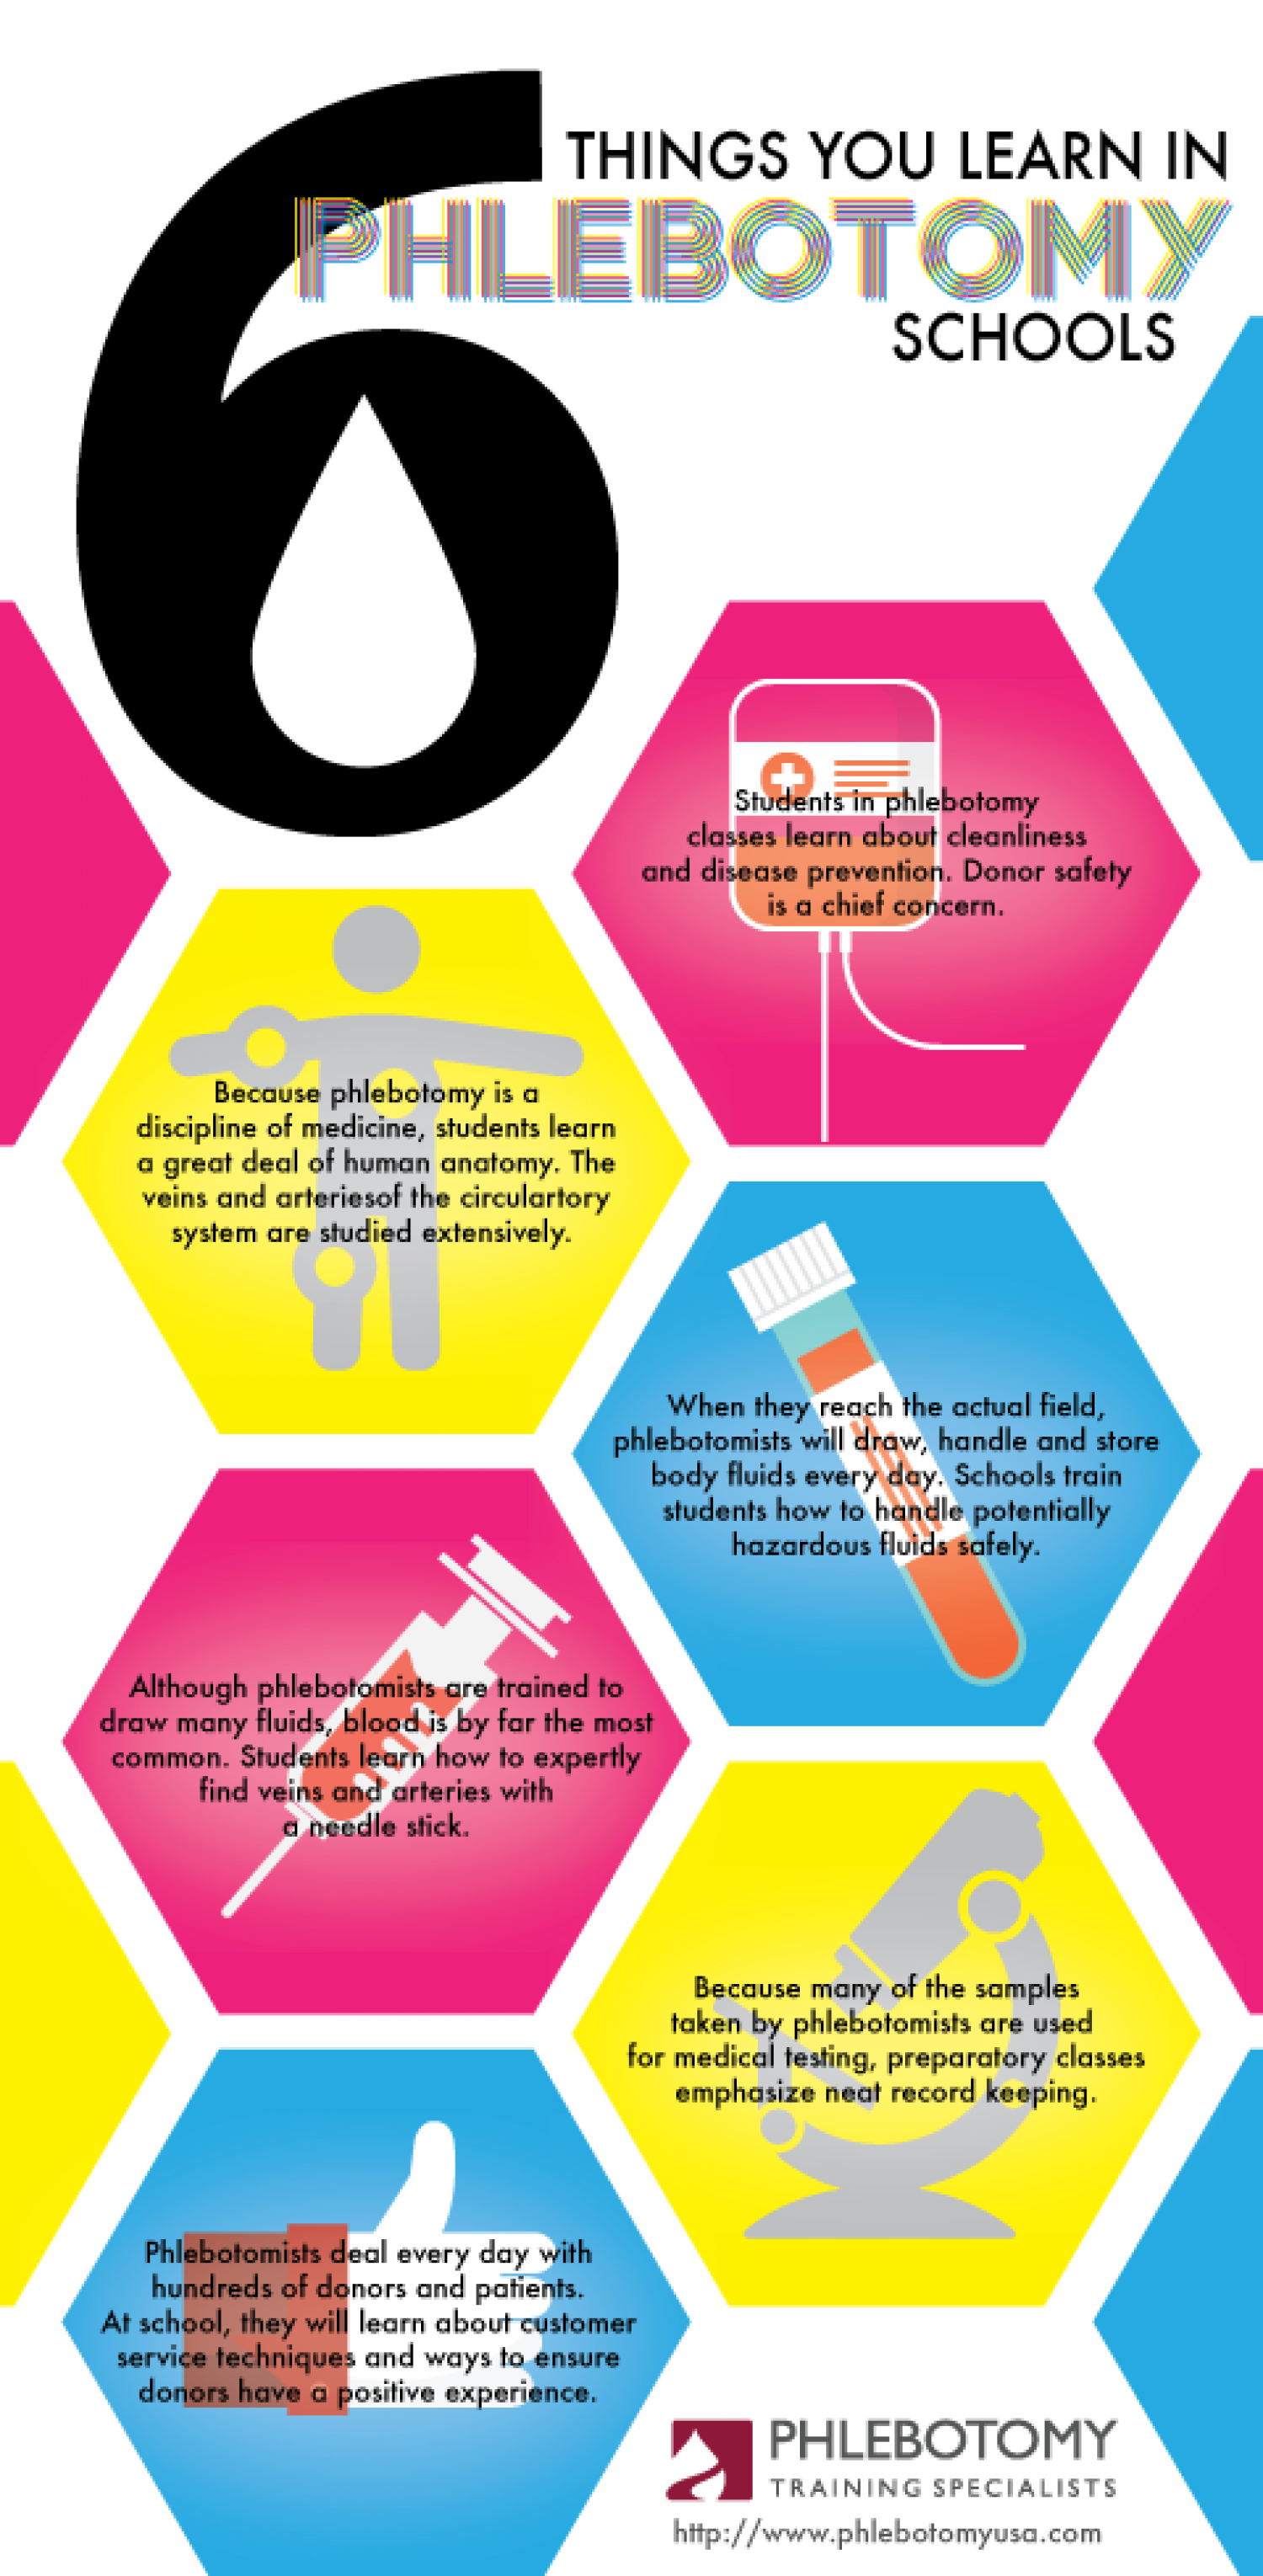 The 6 things you learn in phlebotomy schools visual the 6 things you learn in phlebotomy schools infographic xflitez Image collections